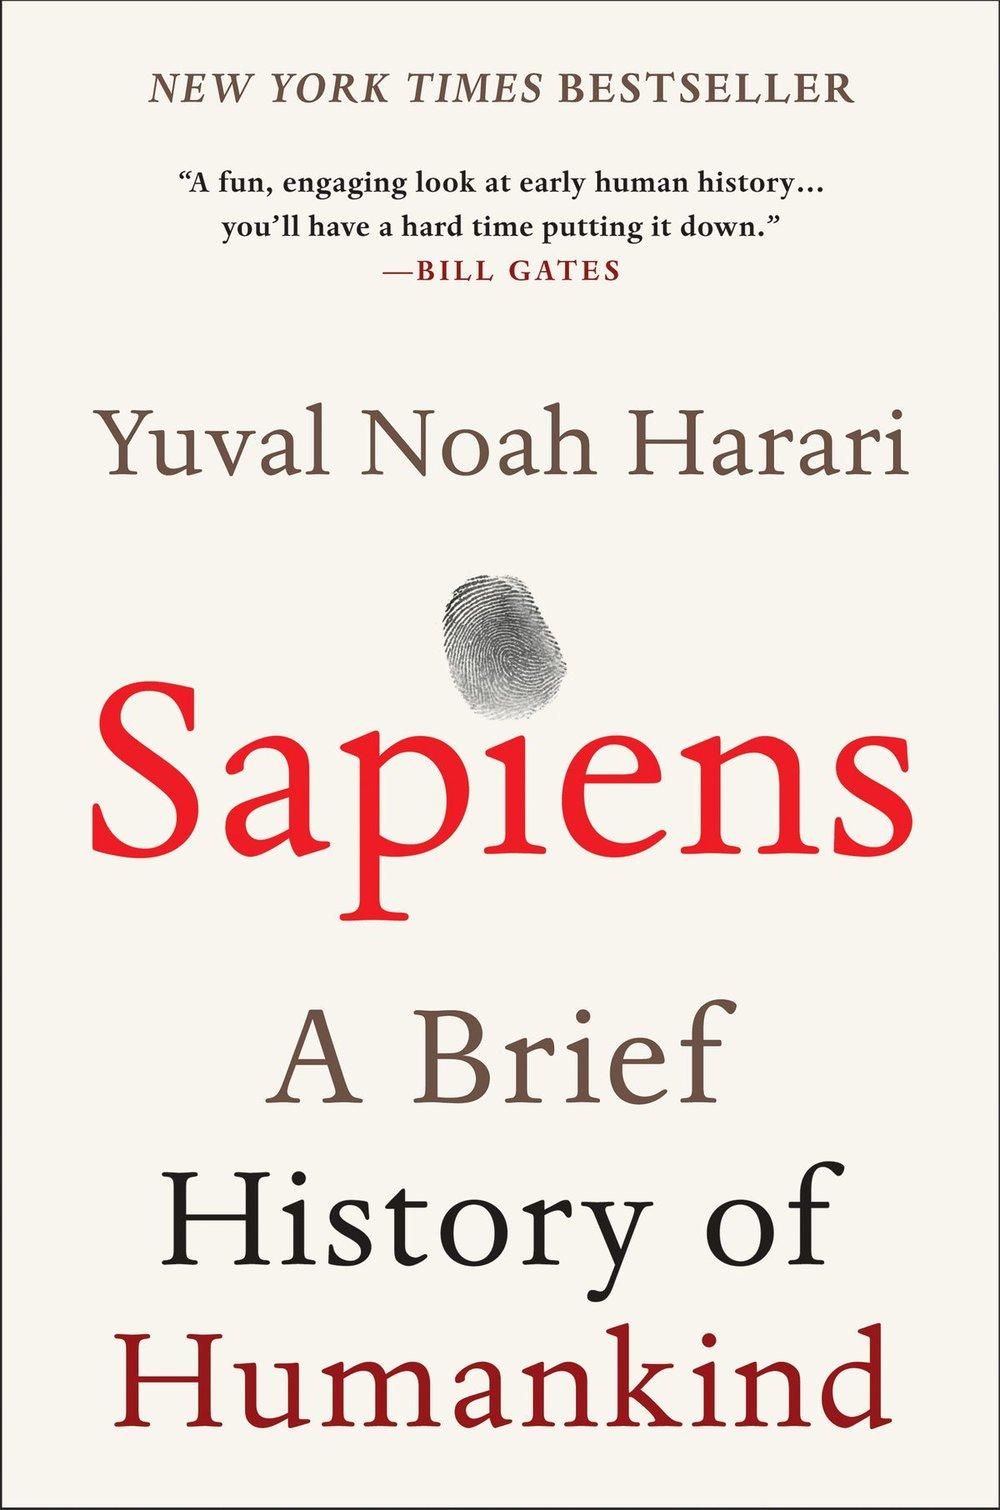 """Sapiens - by Yuval Noah Harari""""Sapiens provides some much-needed insight into our behavioral patterns across a variety of social and landscape scales. It's easy to read and intuitively understood, but also peppered with interesting facts from recent discoveries and changing scientific consensuses.""""- Nadja Quiroz, Landscape Designer""""With approachability, precision, and a wry sense of humor, Yuval Harari places modern humans in the context of our complete collective history and in doing so, calls into question almost every human """"truth"""" we've ever clung to. As Harari states it, """"We study history not to know the future but to widen our horizons, to understand that our present situation is neither natural nor inevitable, and that we consequently have many more possibilities before us than we imagine.""""- Judith Edwards, Marketing Manager"""